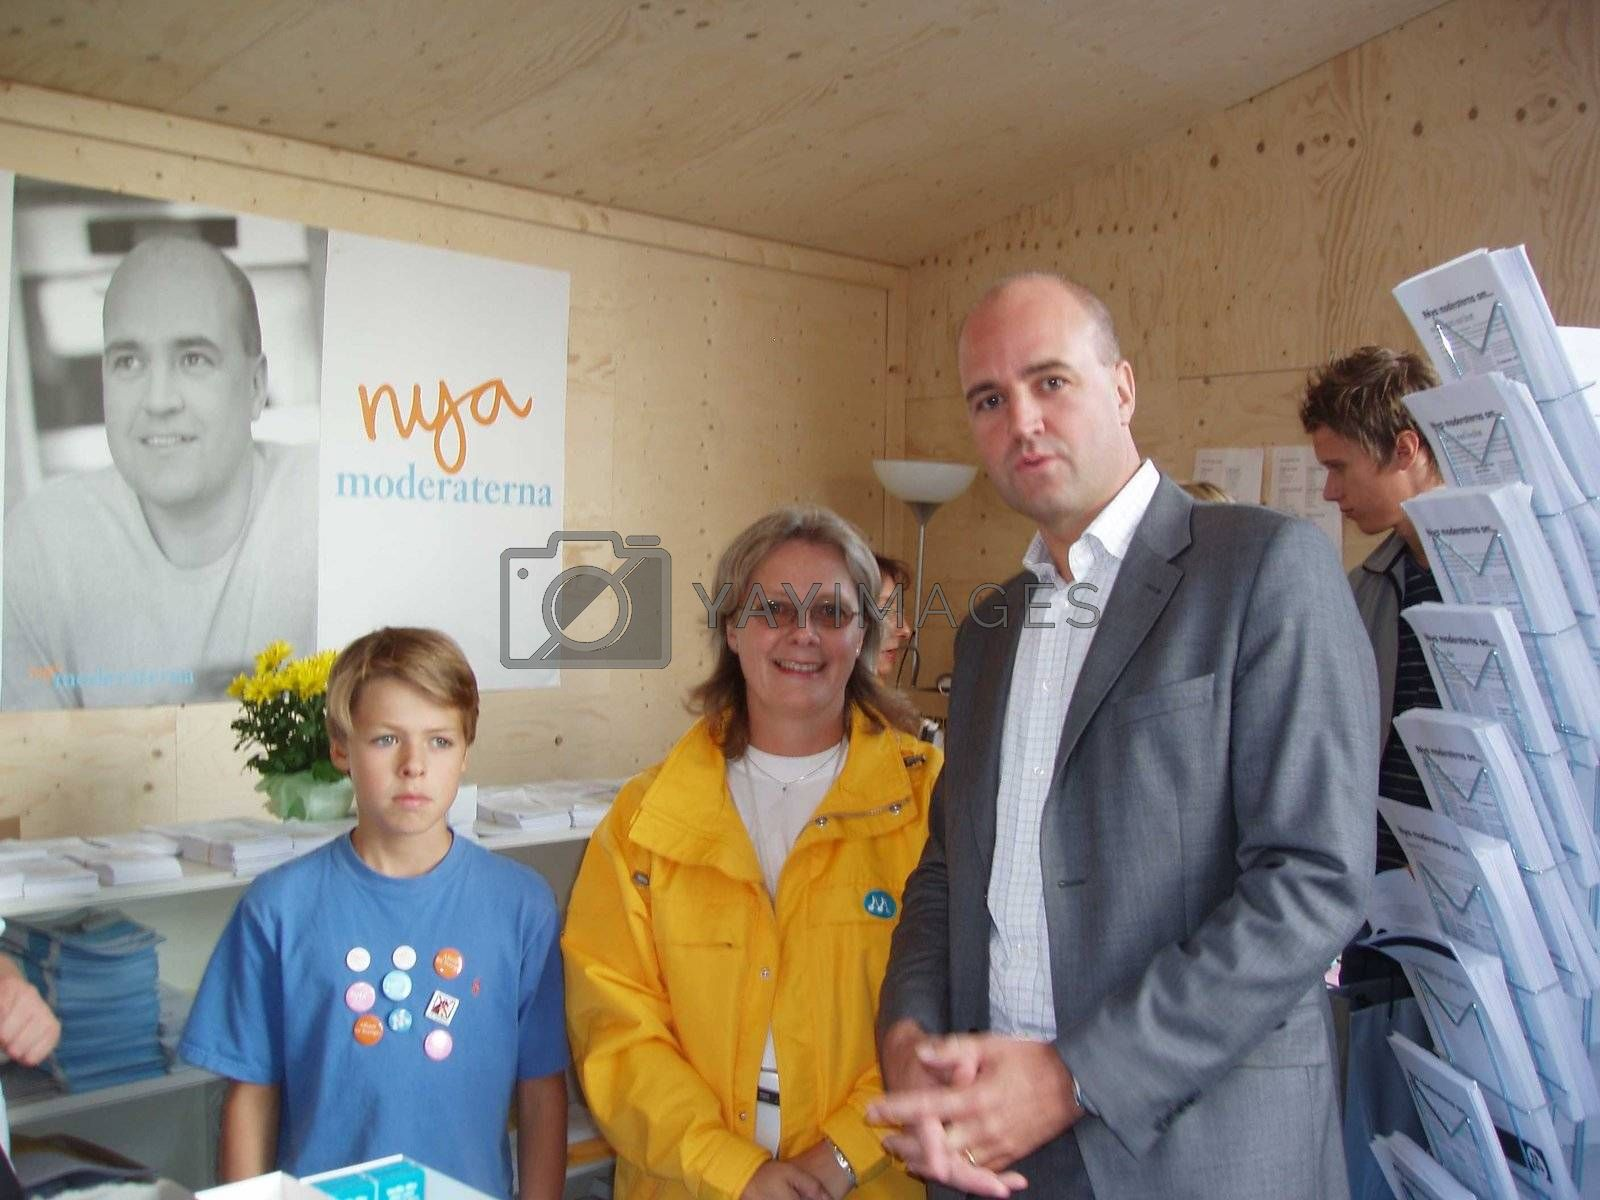 Swedish prime ministre Fredrik Reinfeldt in september 2006